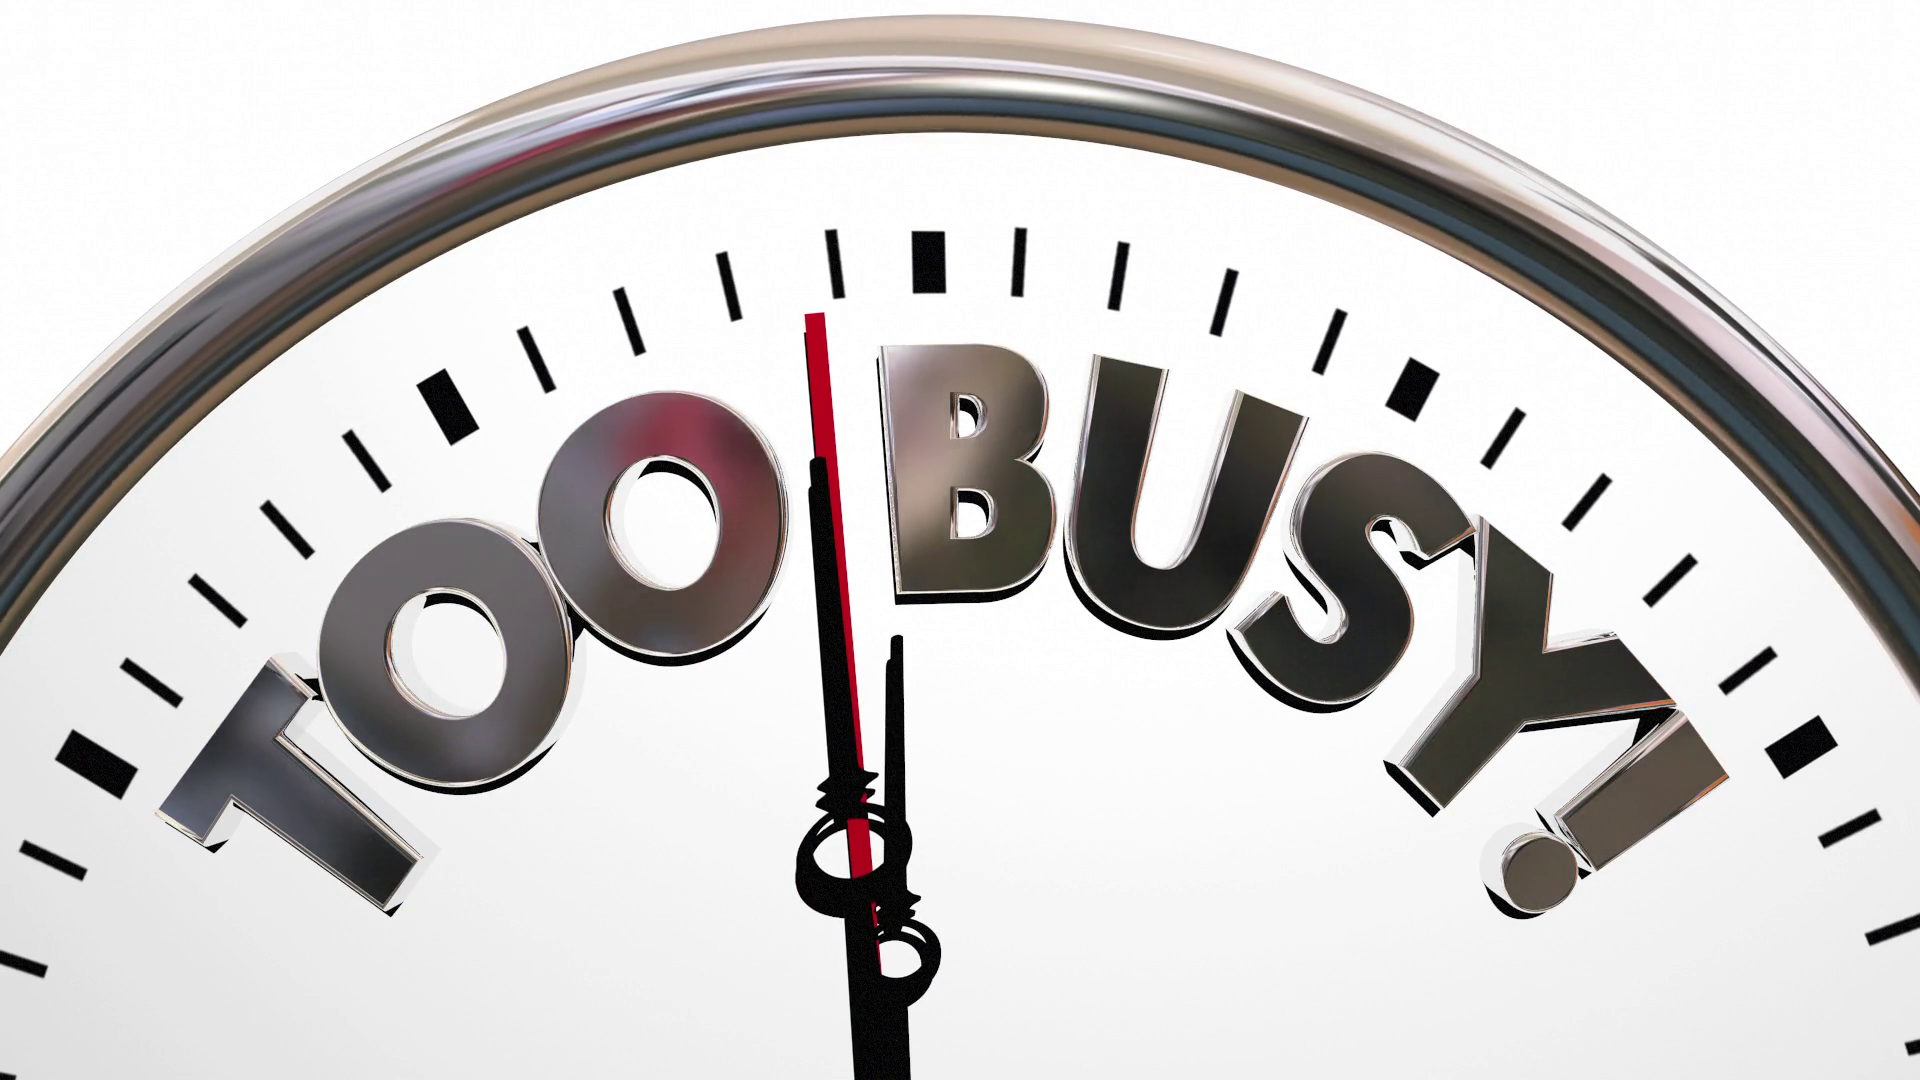 Too Busy Overworked Stress Time Clock Words 3 D Animation Motion ...